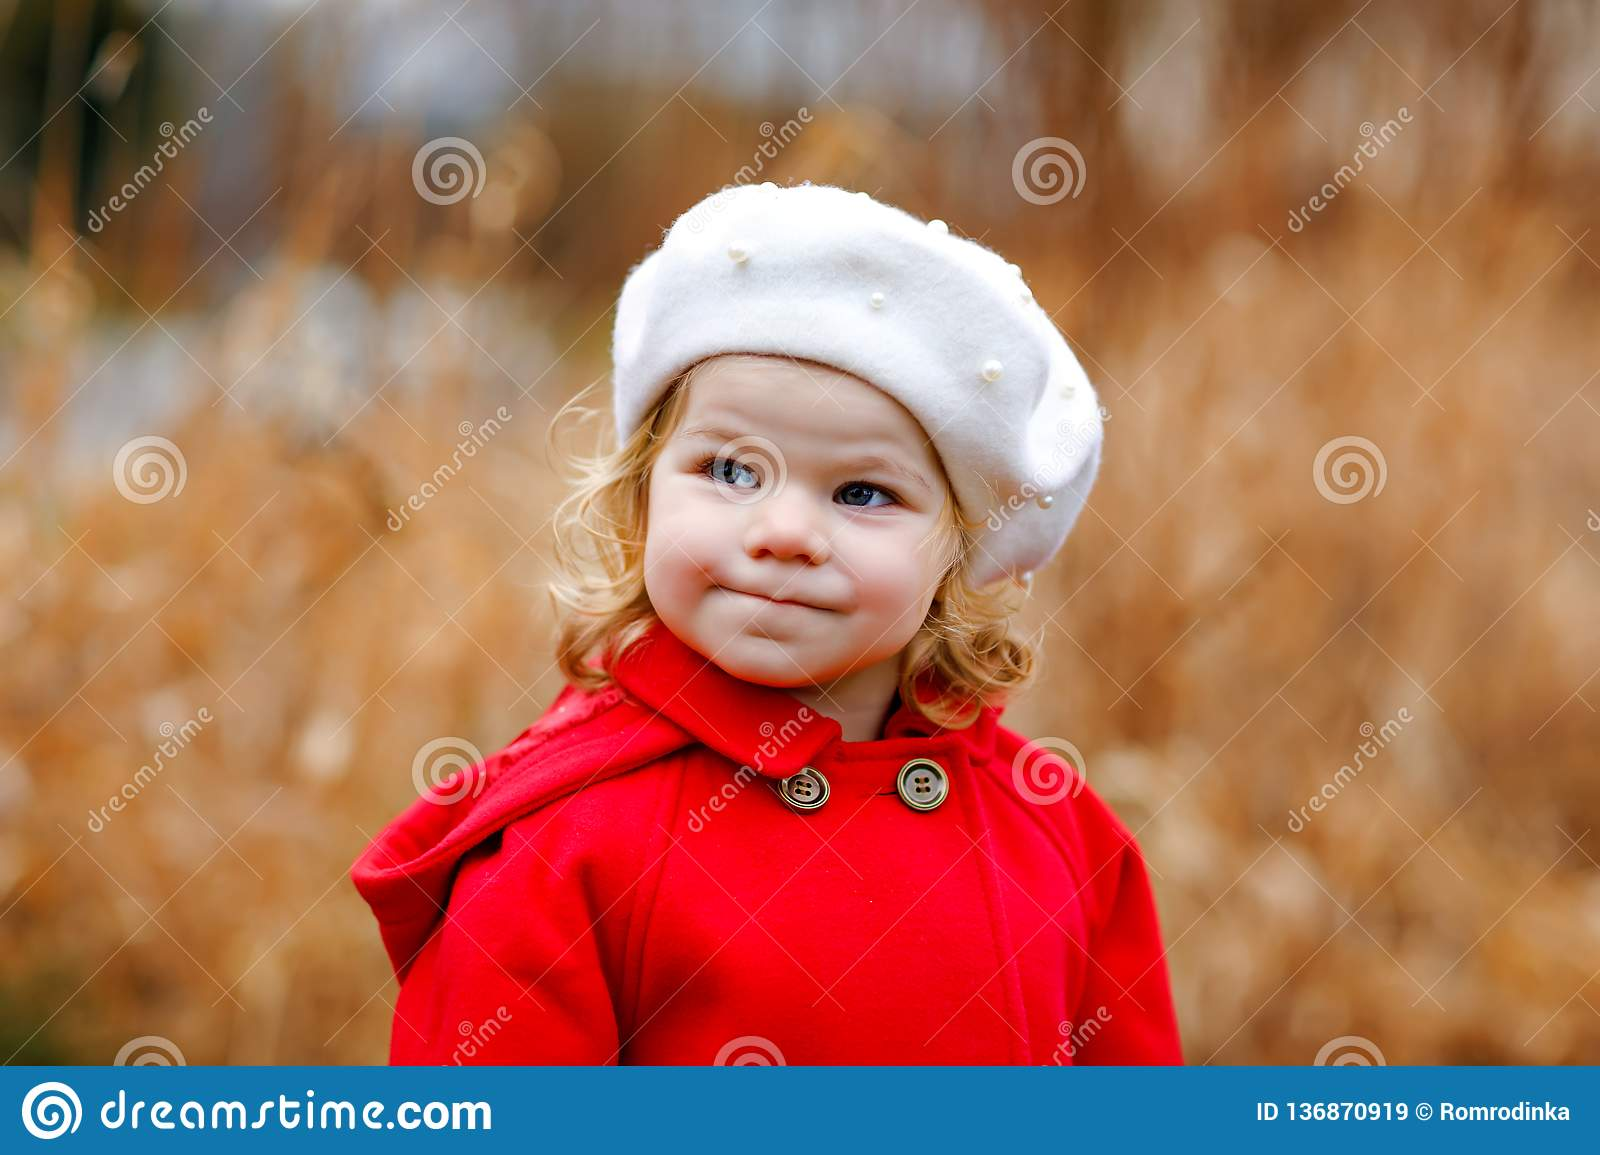 fbdeade7e0e Outdoor portrait of little cute toddler girl in red coat and white fashion  hat barret.